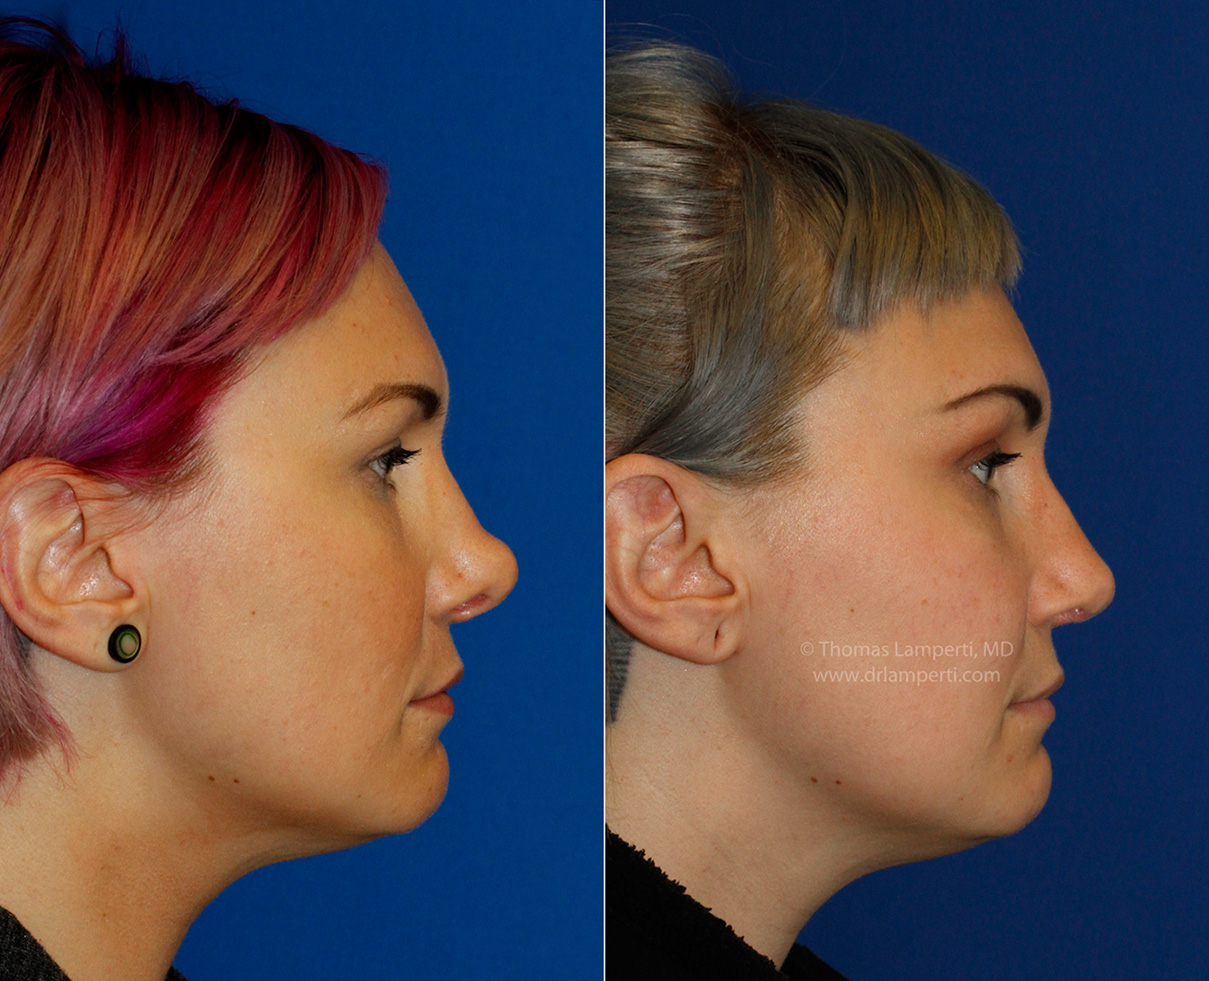 Revision rhinoplasty patient 14 profile before and after photos